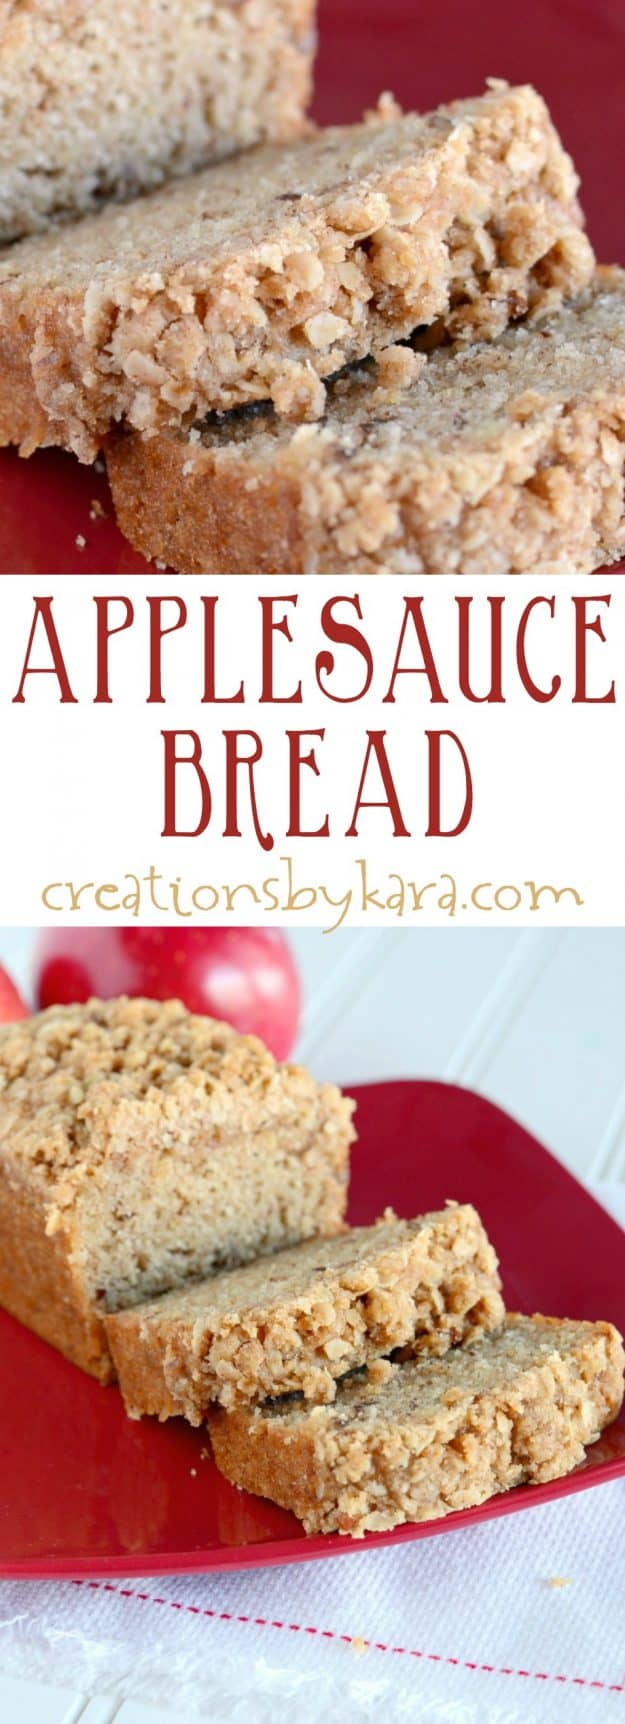 applesauce bread recipe collage